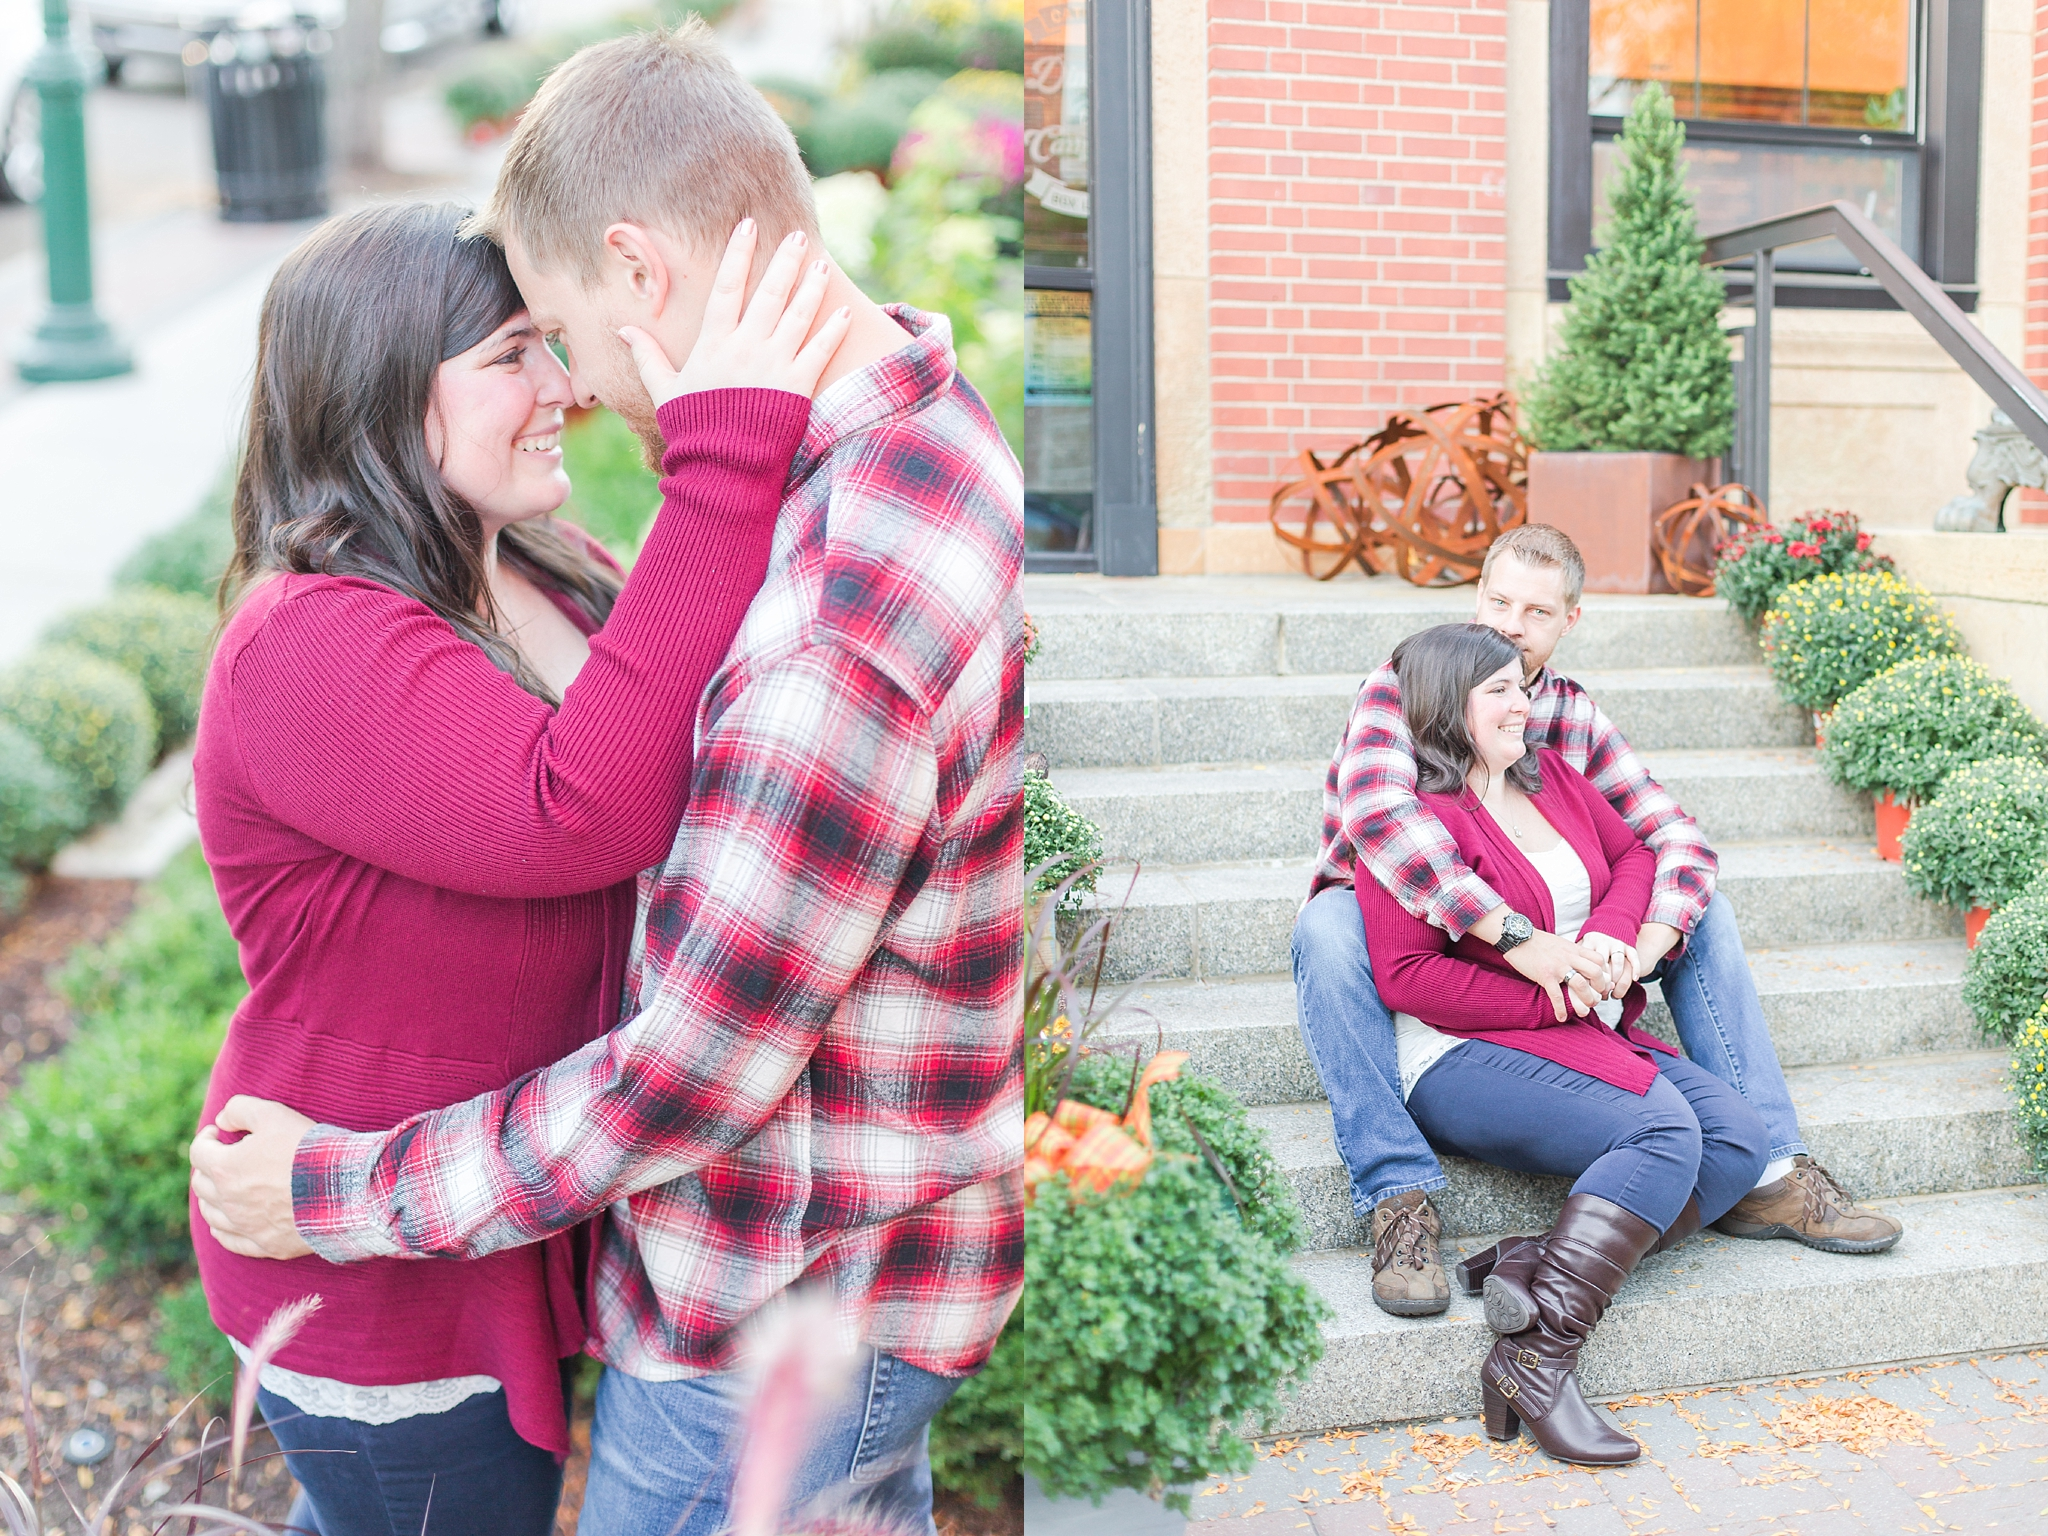 fun-fall-engagement-photos-in-downtown-plymouth-michigan-by-courtney-carolyn-photography_0016.jpg